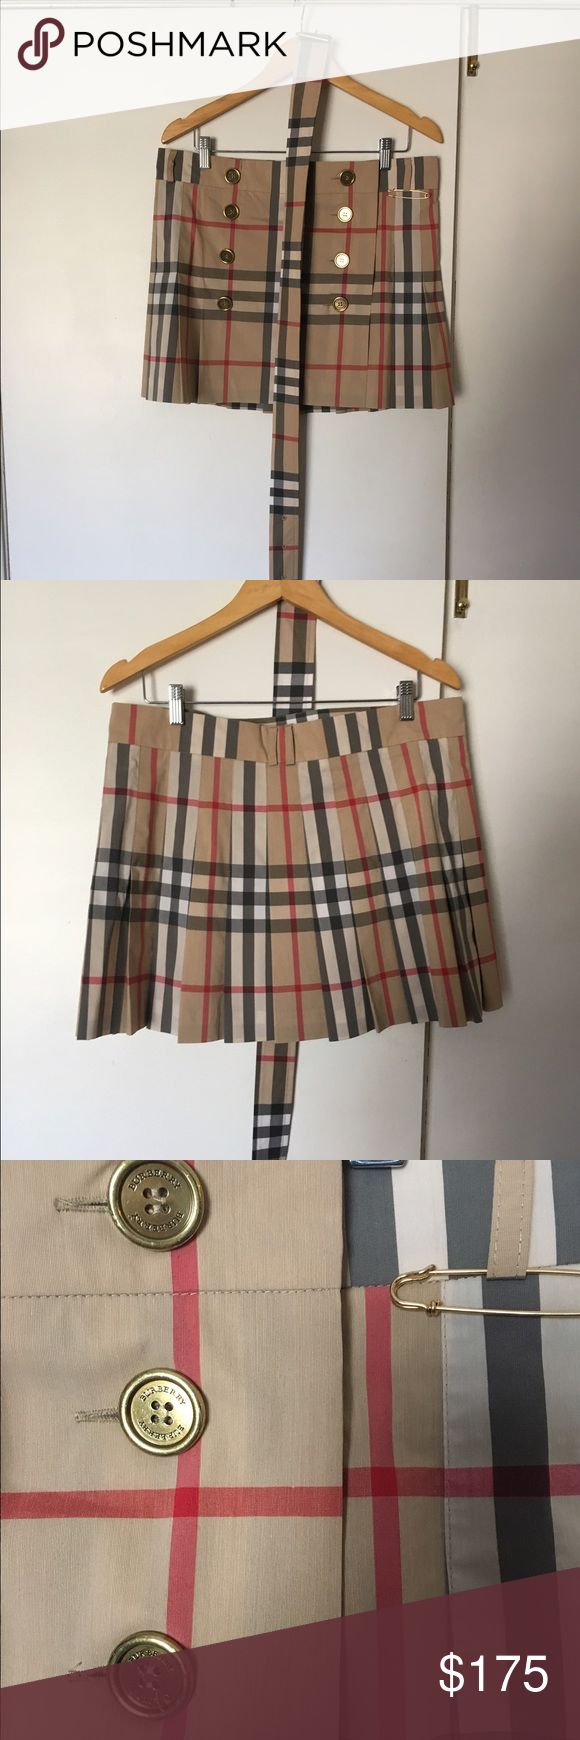 Summer Burberry skirt🎊Price drop! Authentic Burberry skirt, summer weight. Italian size 44 (L). Worn 2 times, dry cleaned. Perfect condition! I bought large to wear low on hips, still too large for me. Includes belt, safety pin. Burberry Skirts Mini